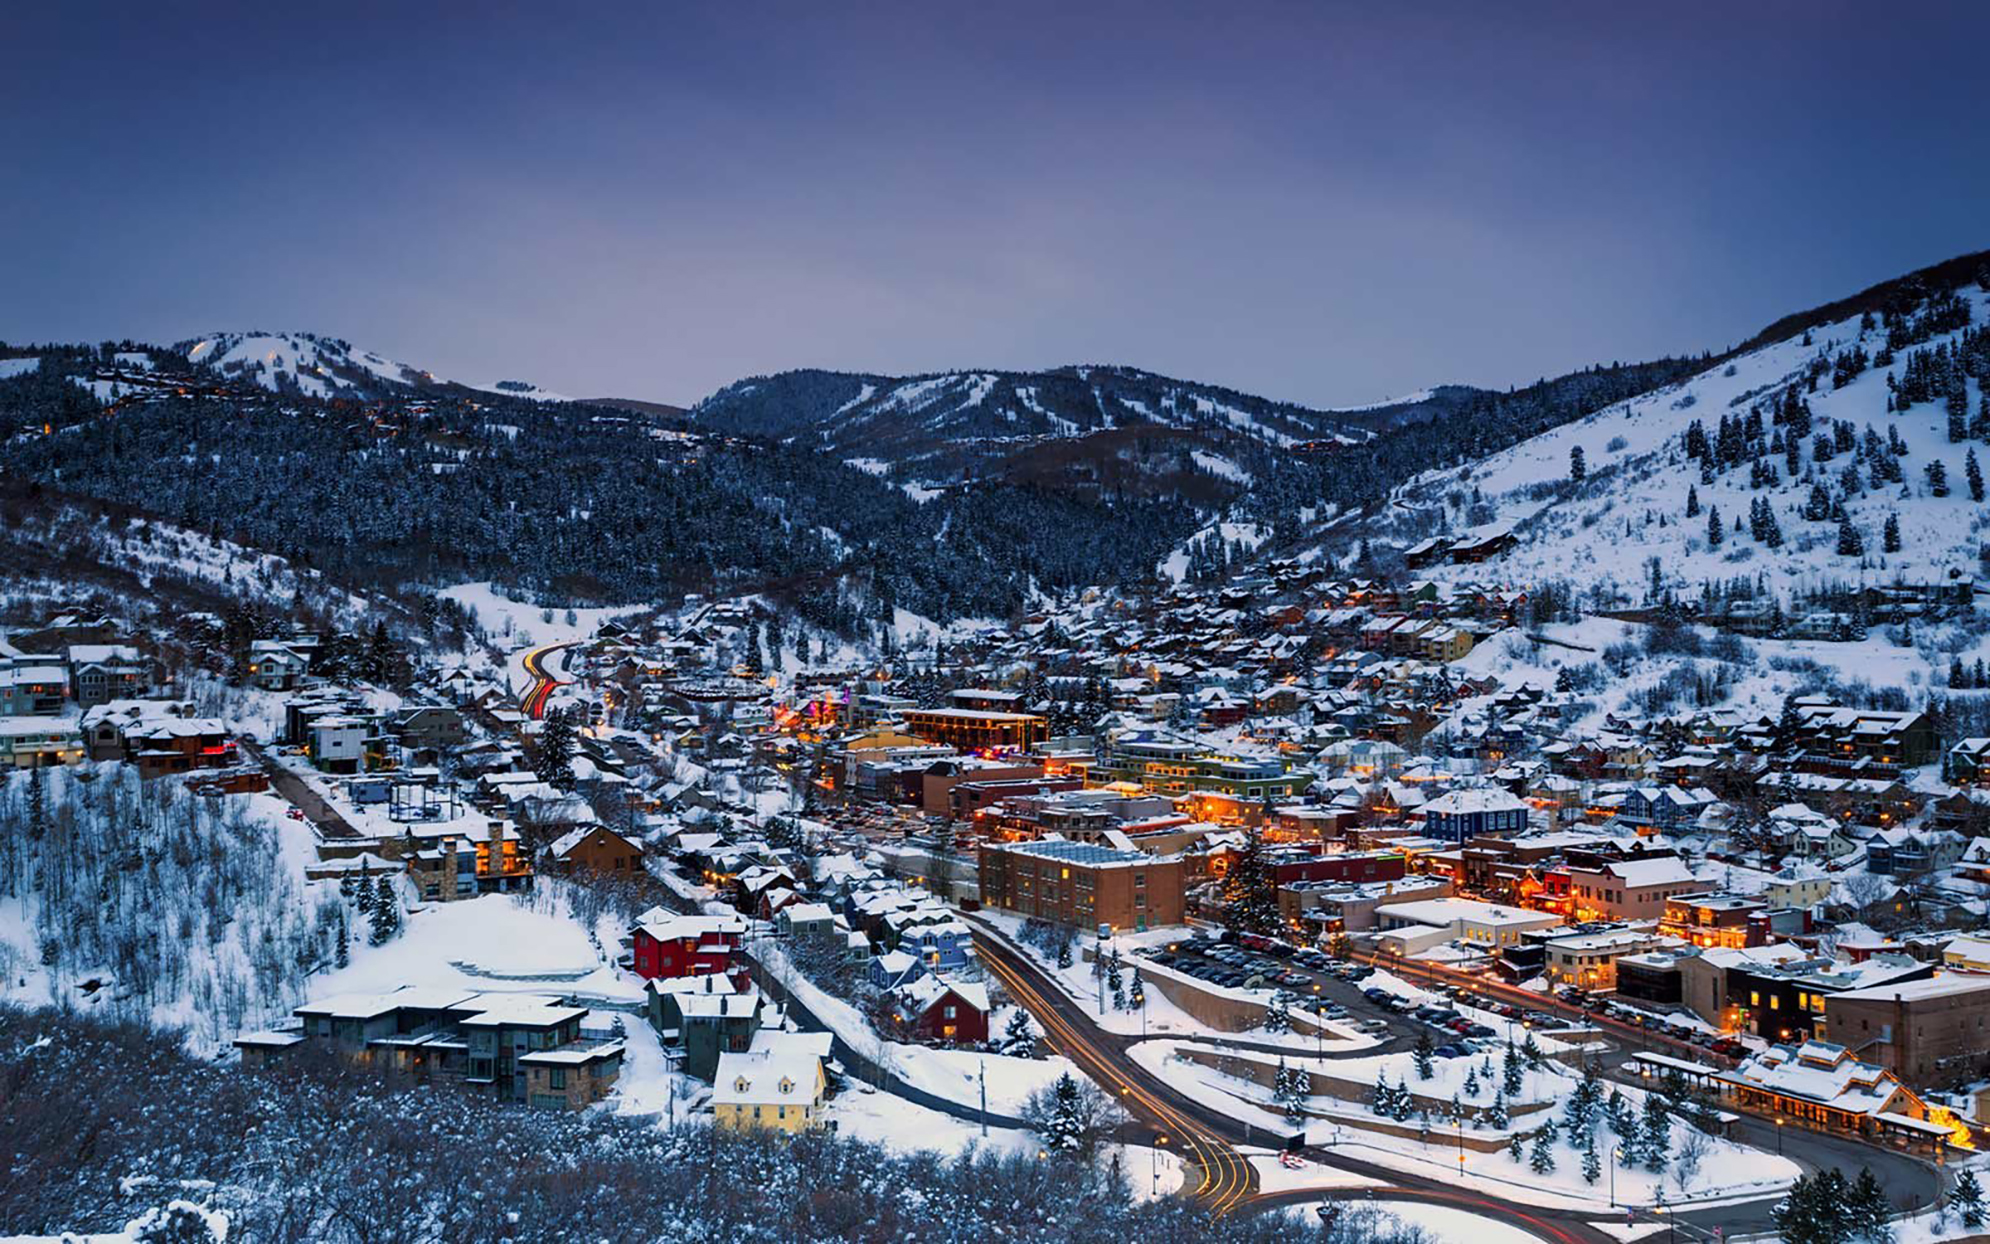 Night lights in old town Park City, Utah, USA.